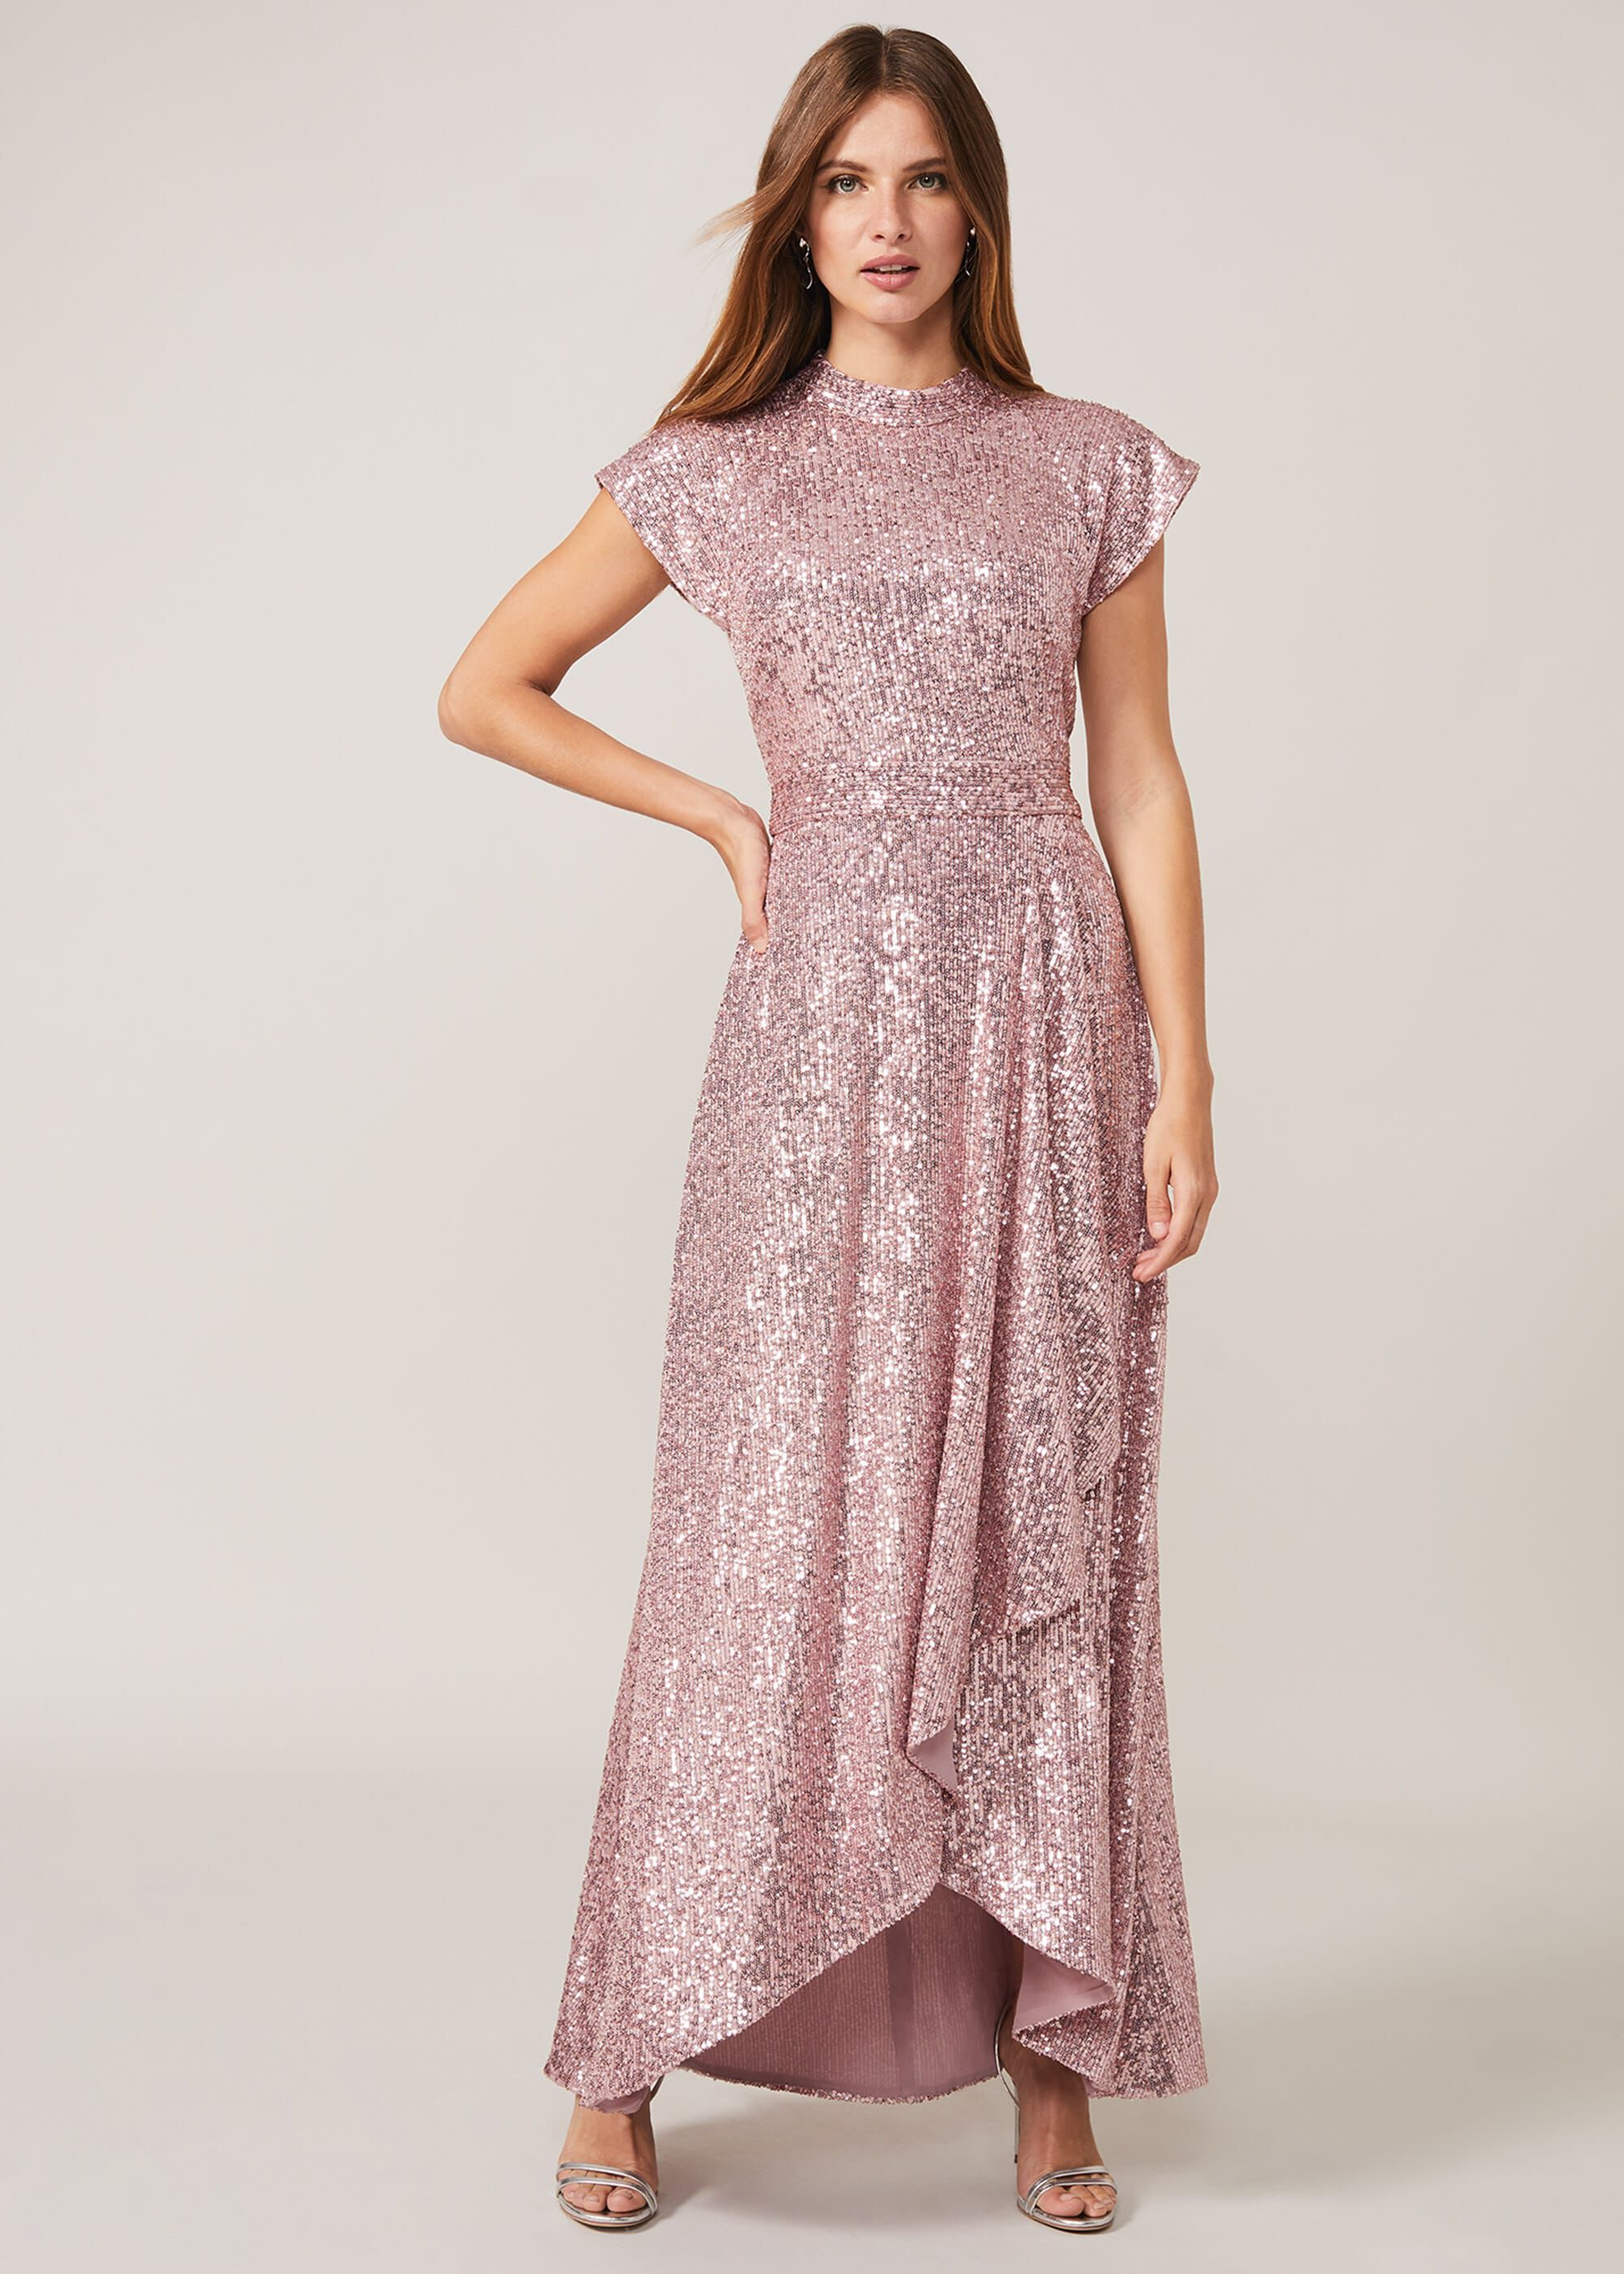 Phase Eight Kendra Sequin Maxi Dress, Pink, Occasion Dress